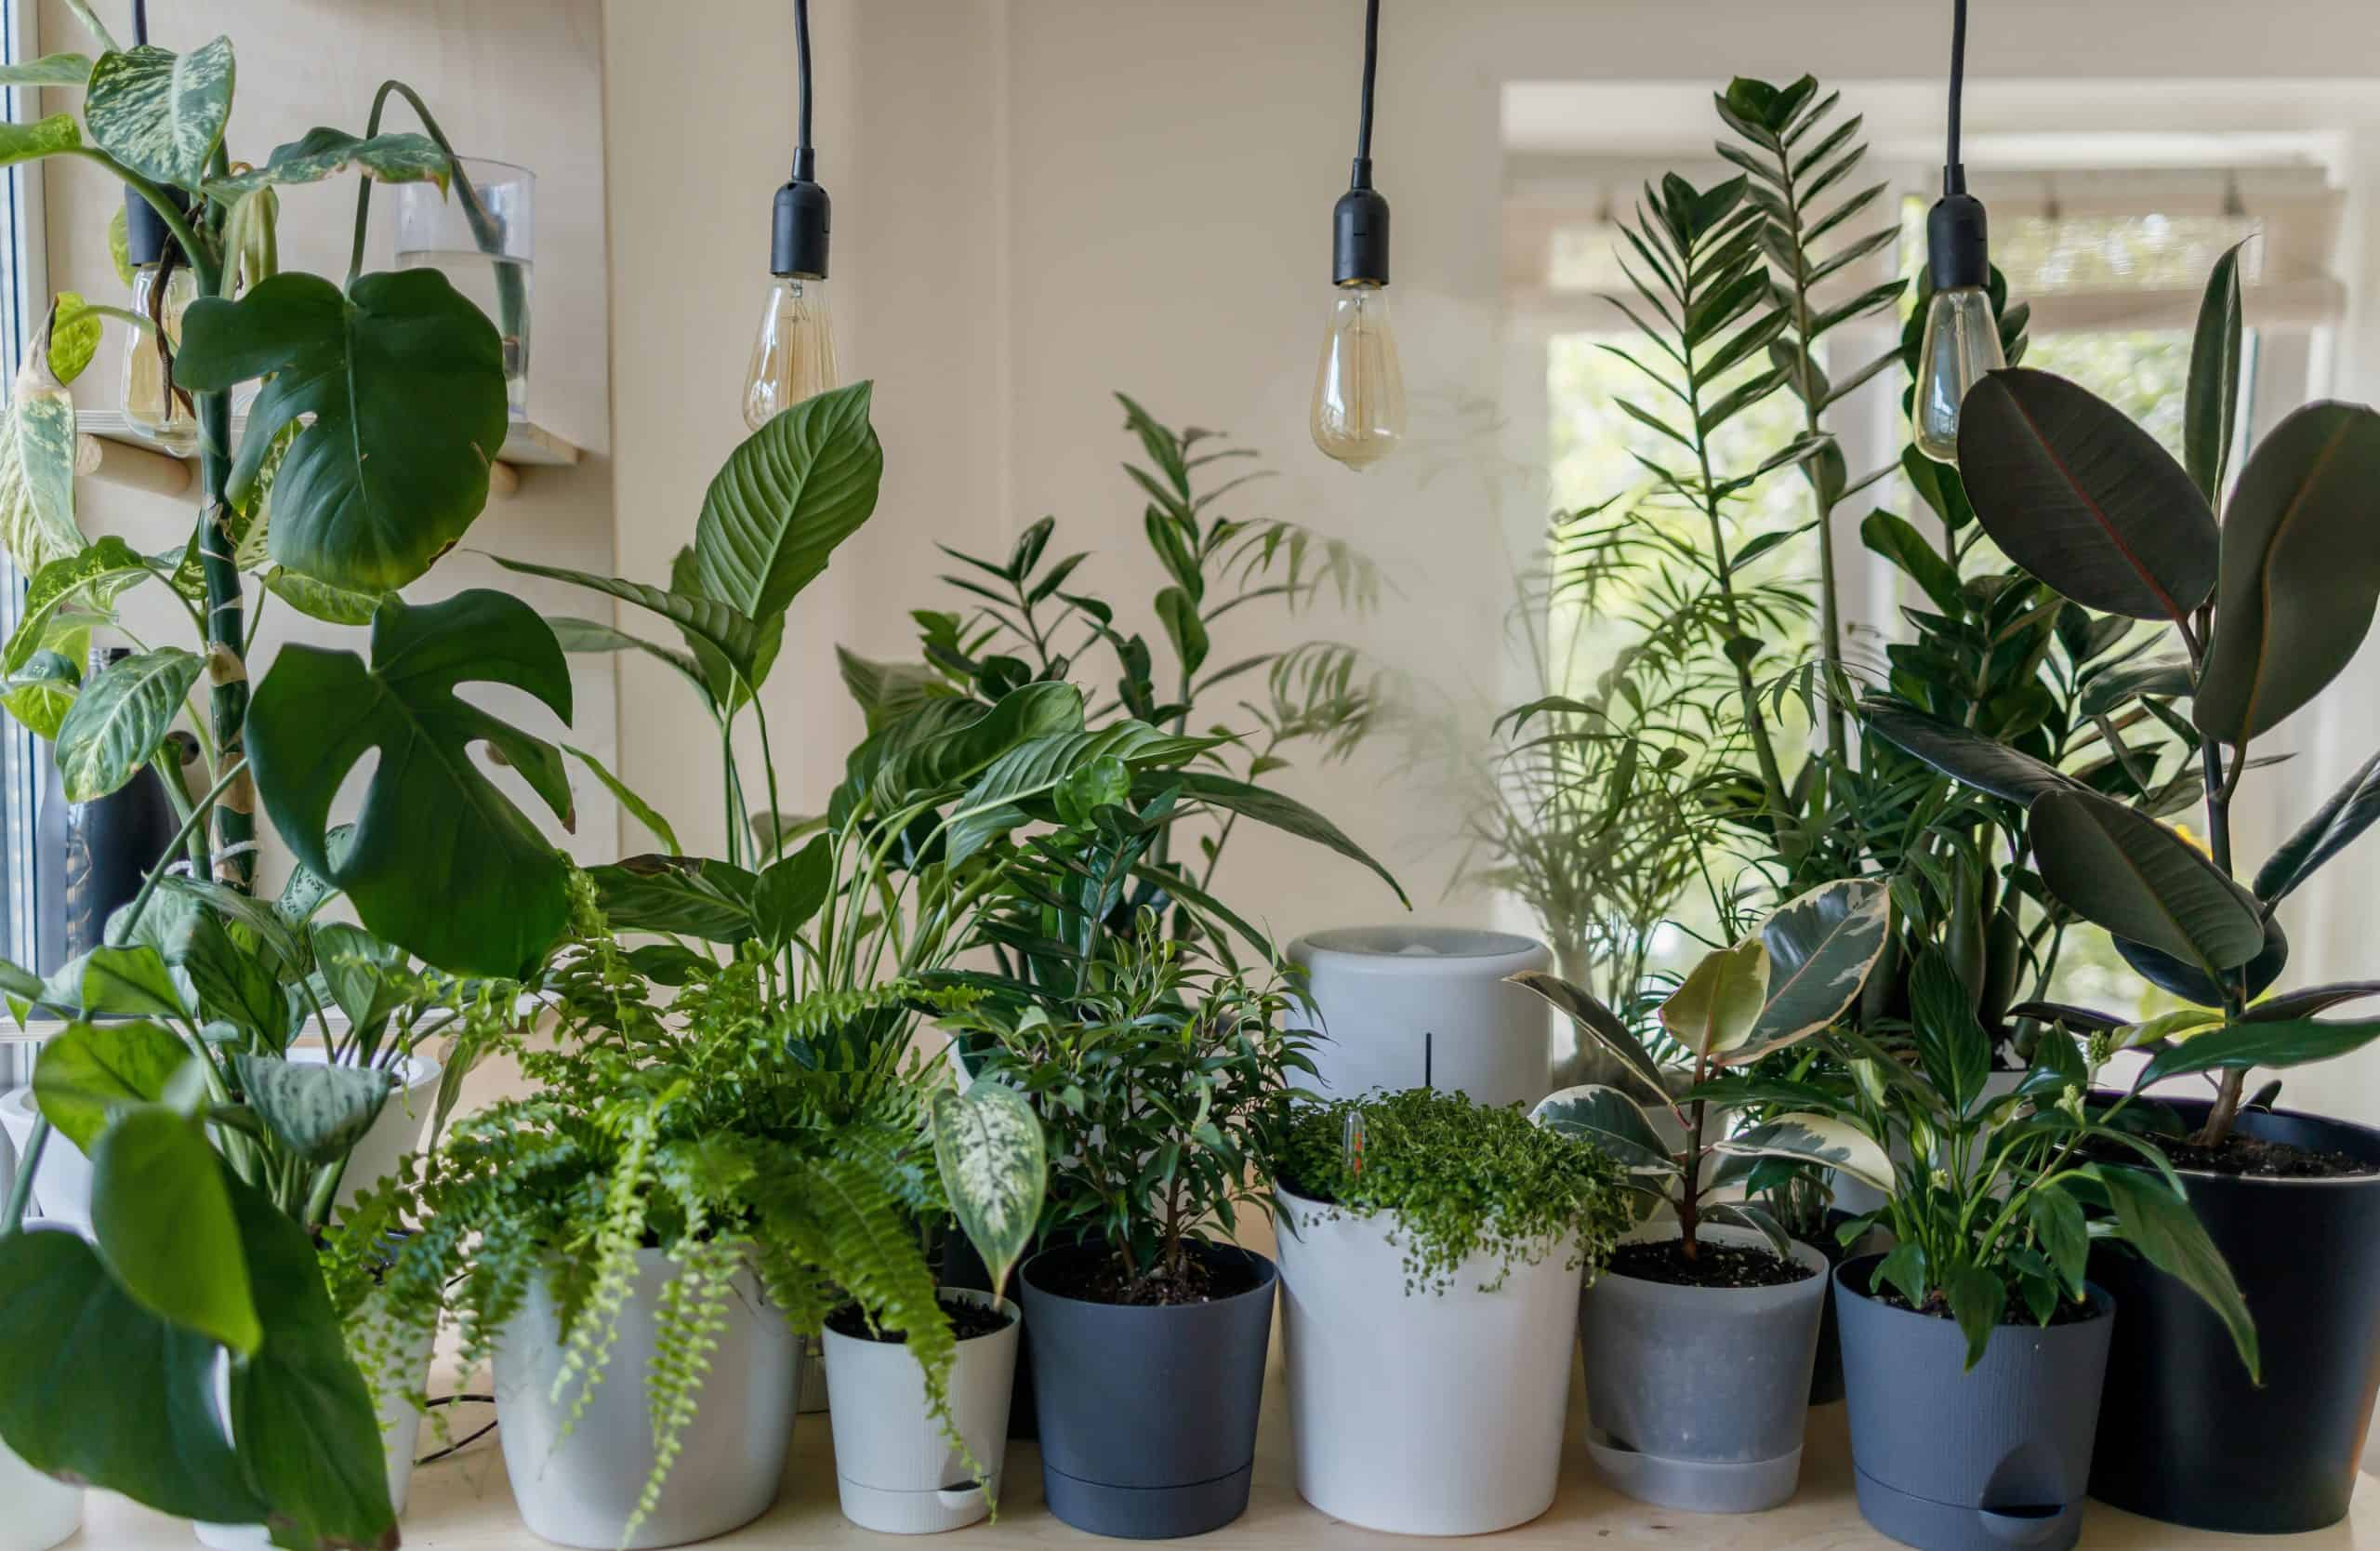 51 Awesome Indoor Garden Ideas For Your Home